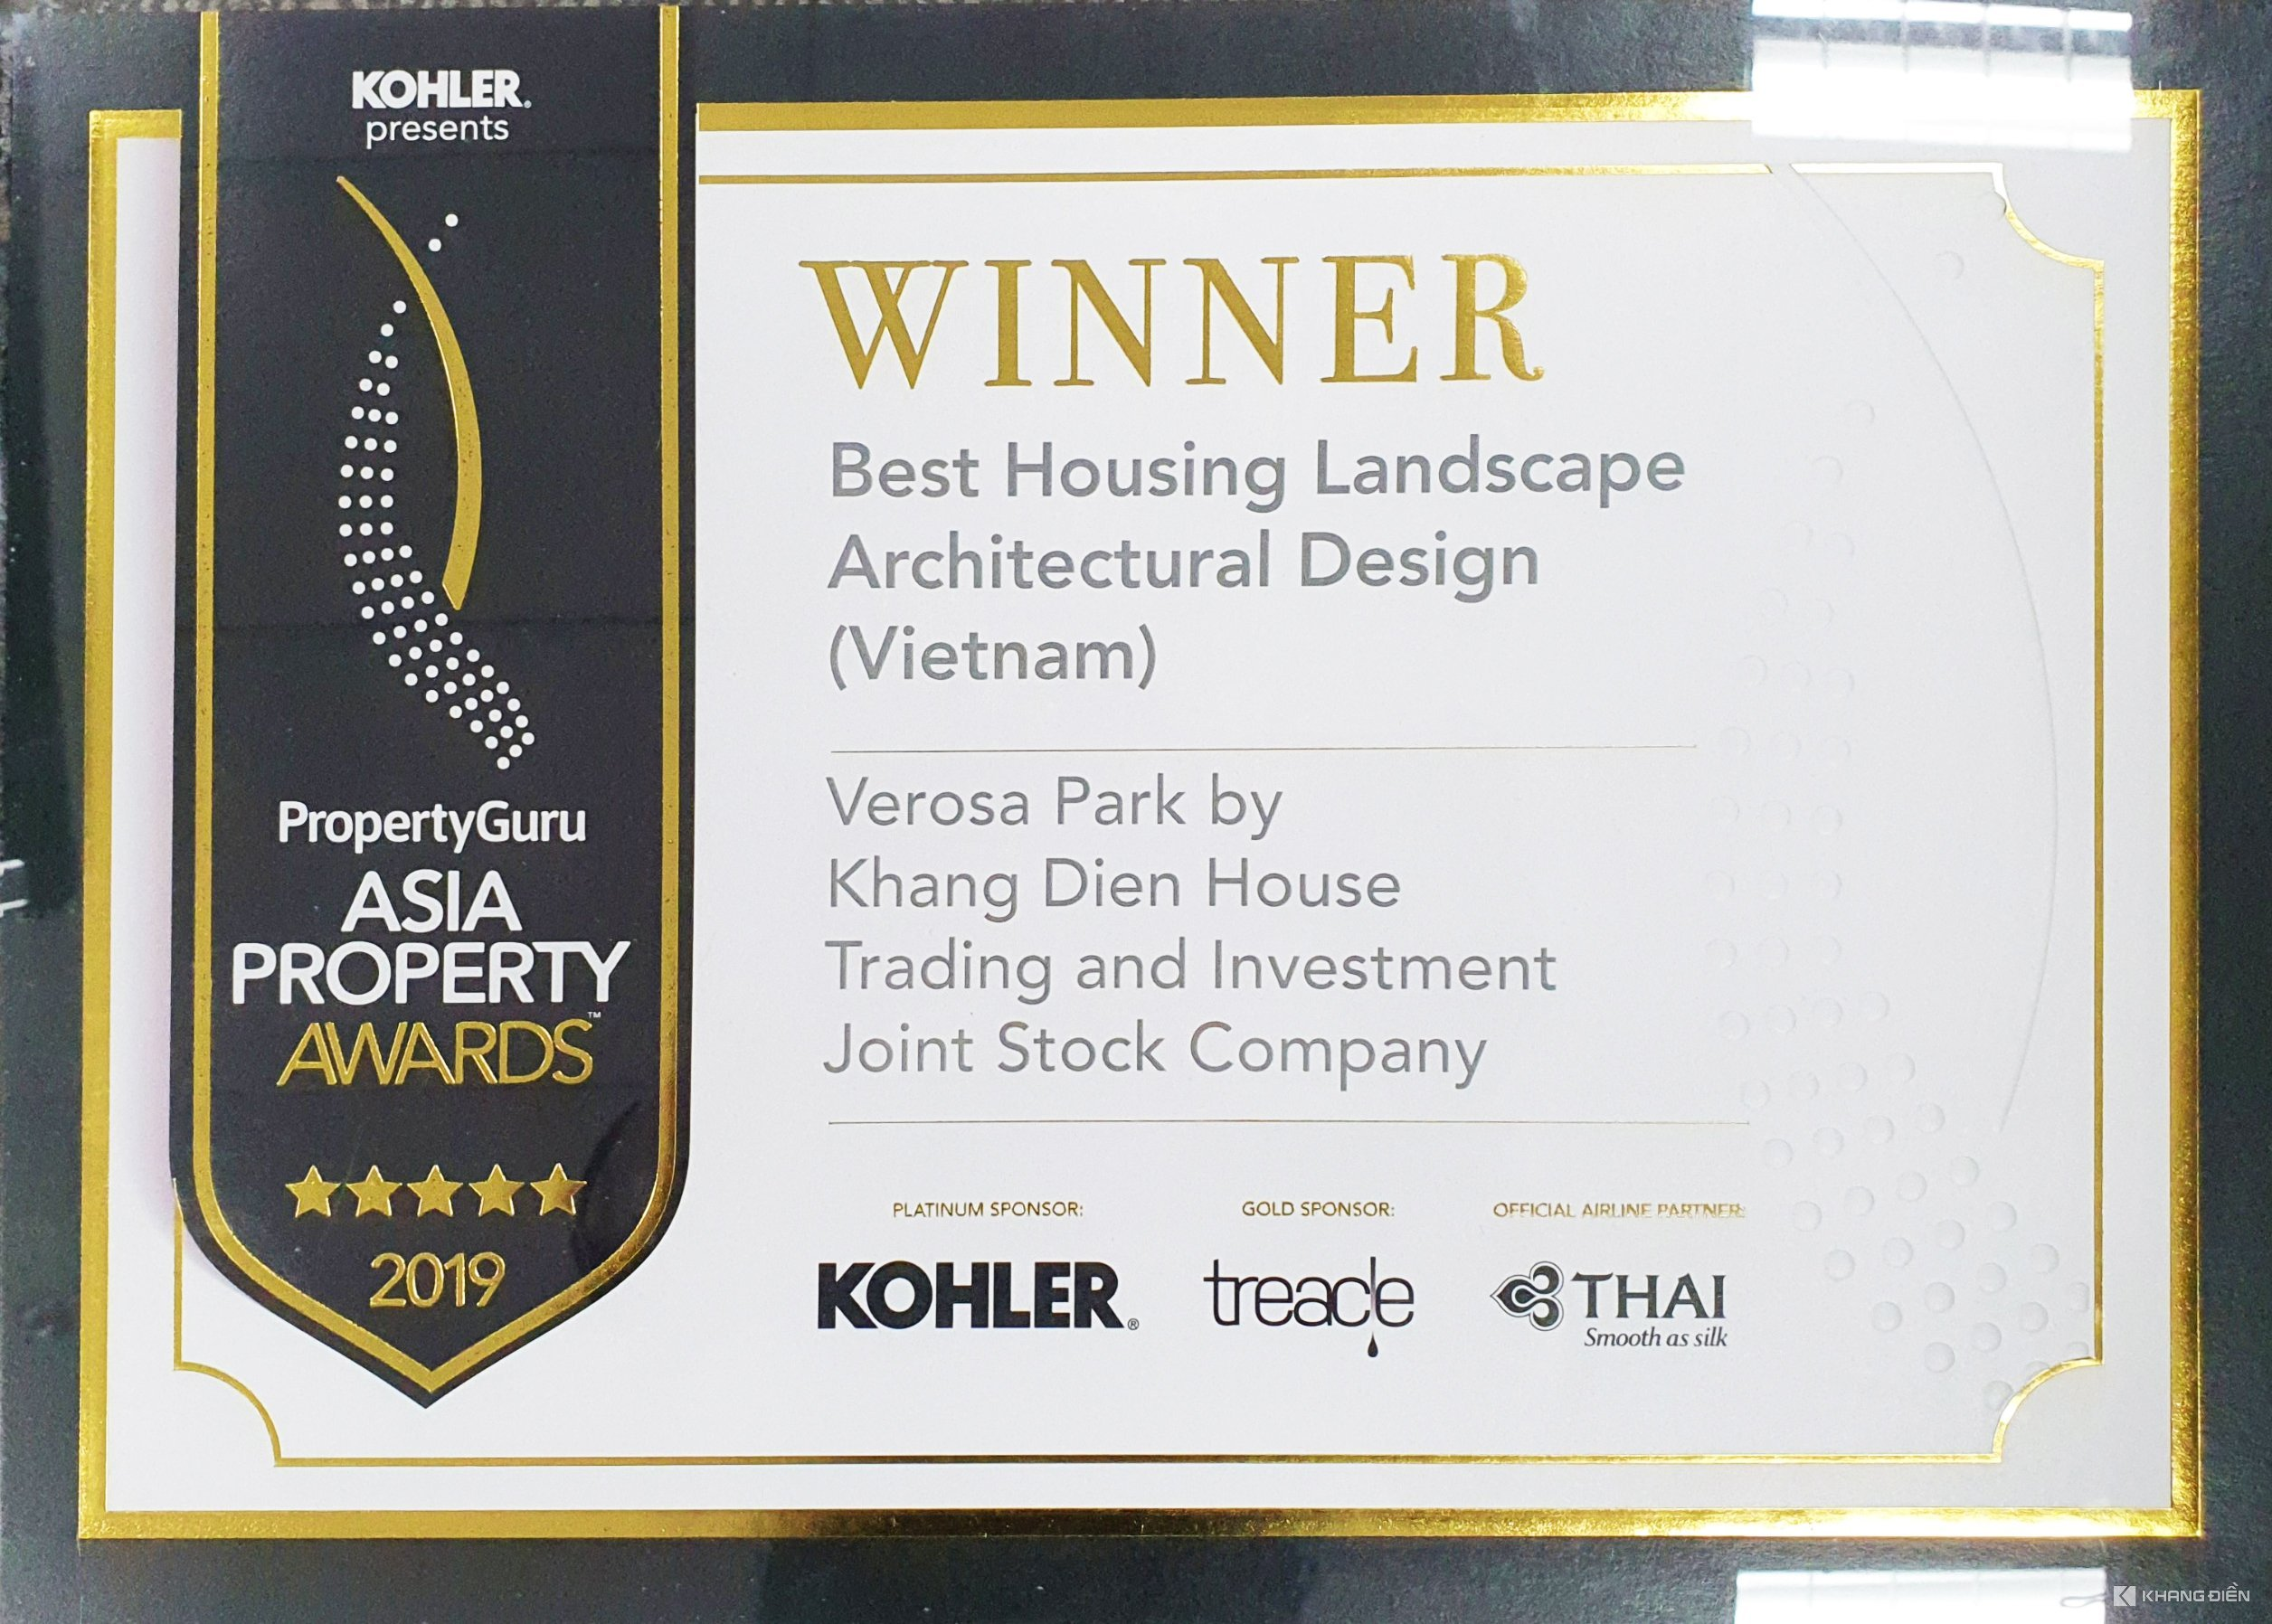 BEST HOUSING LANDSCAPE ARCHITECTURAL DESIGN - ASIA PROPERTY AWARDS 2019